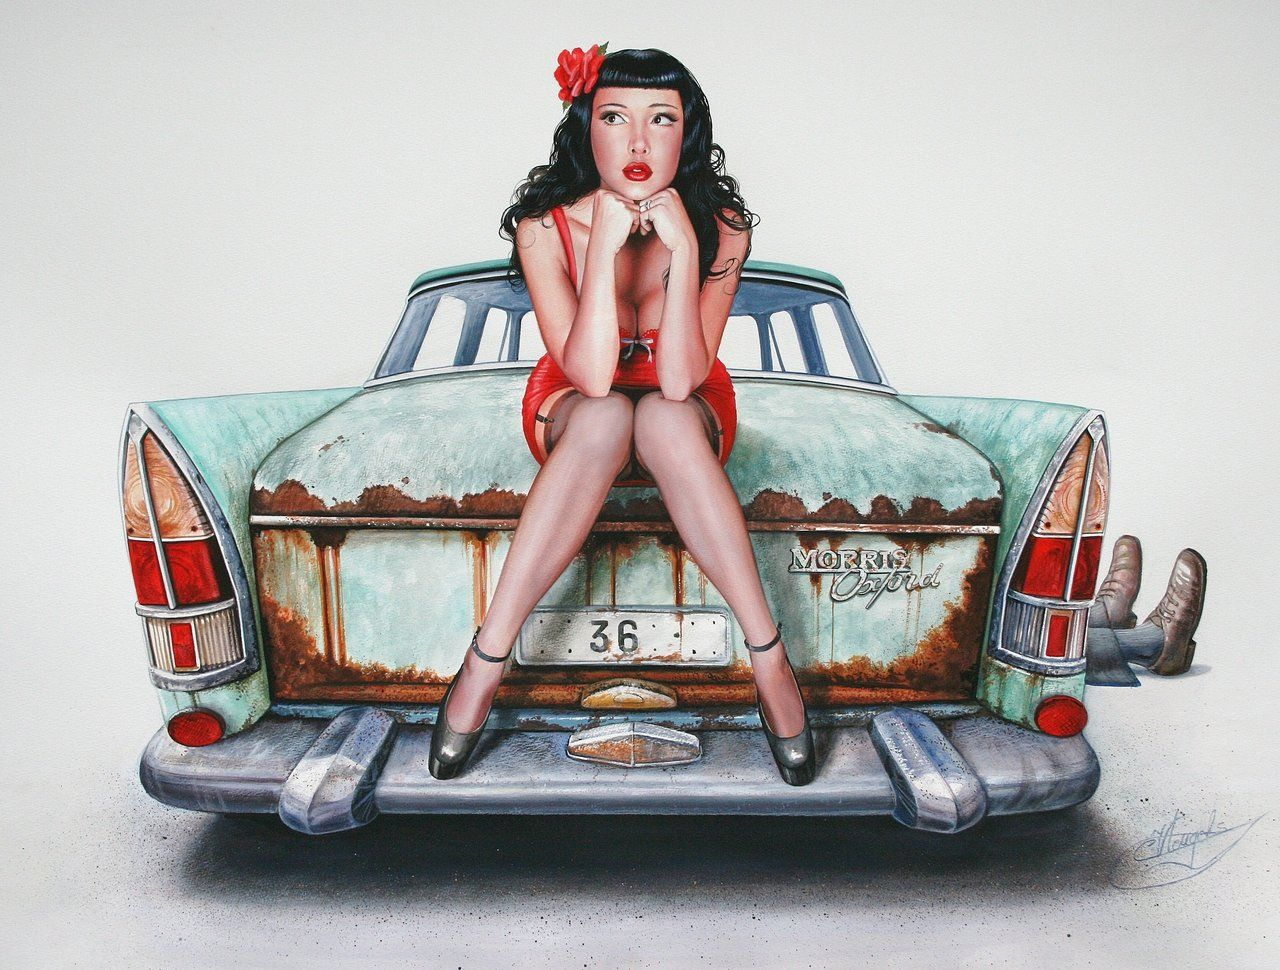 Vintage Classic Cars And Girls The Mechanic S Girlfriend Pin Up